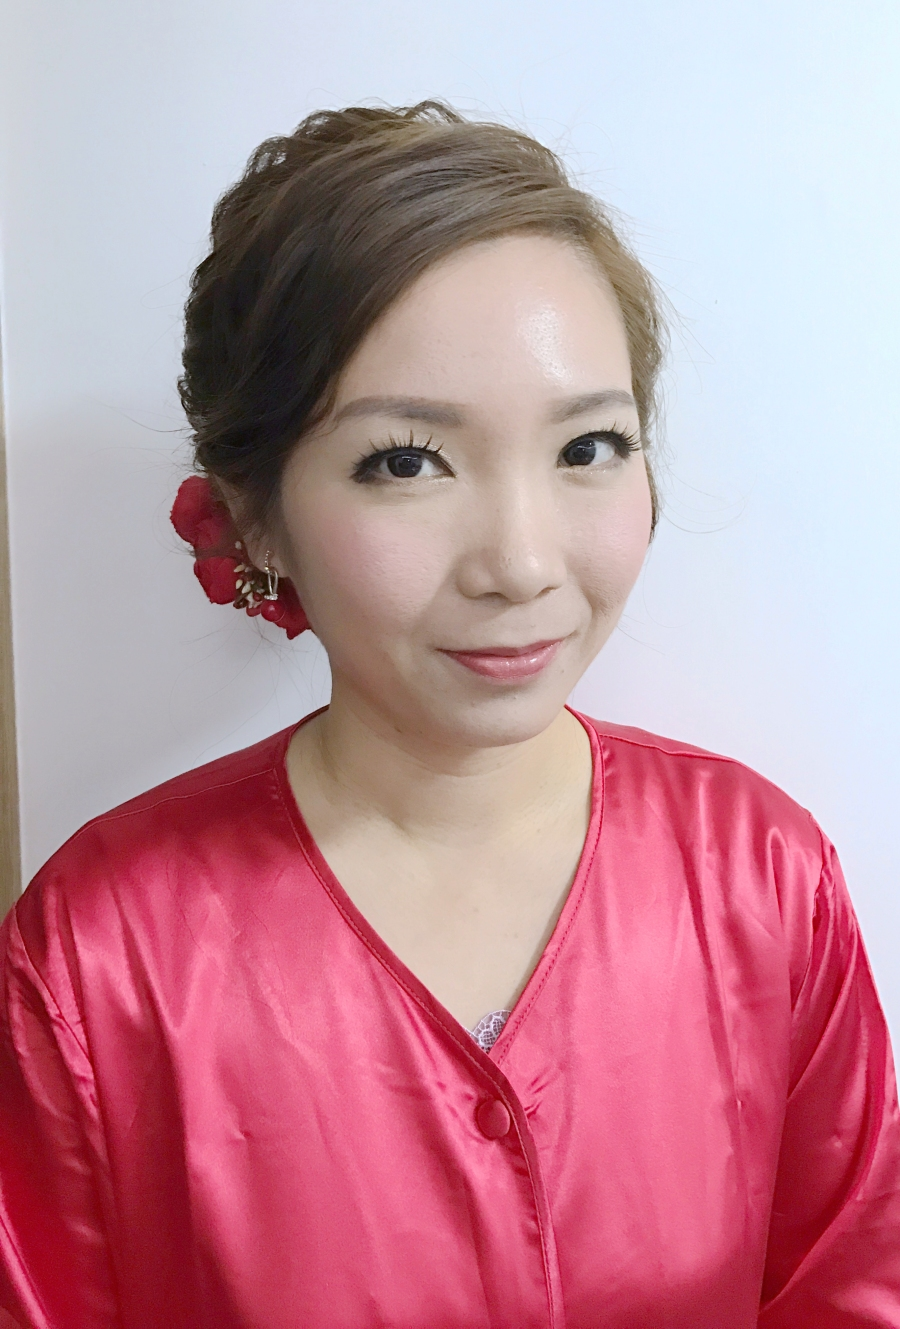 新妝化妝師 wedding bridal makeup hair hk _ching1